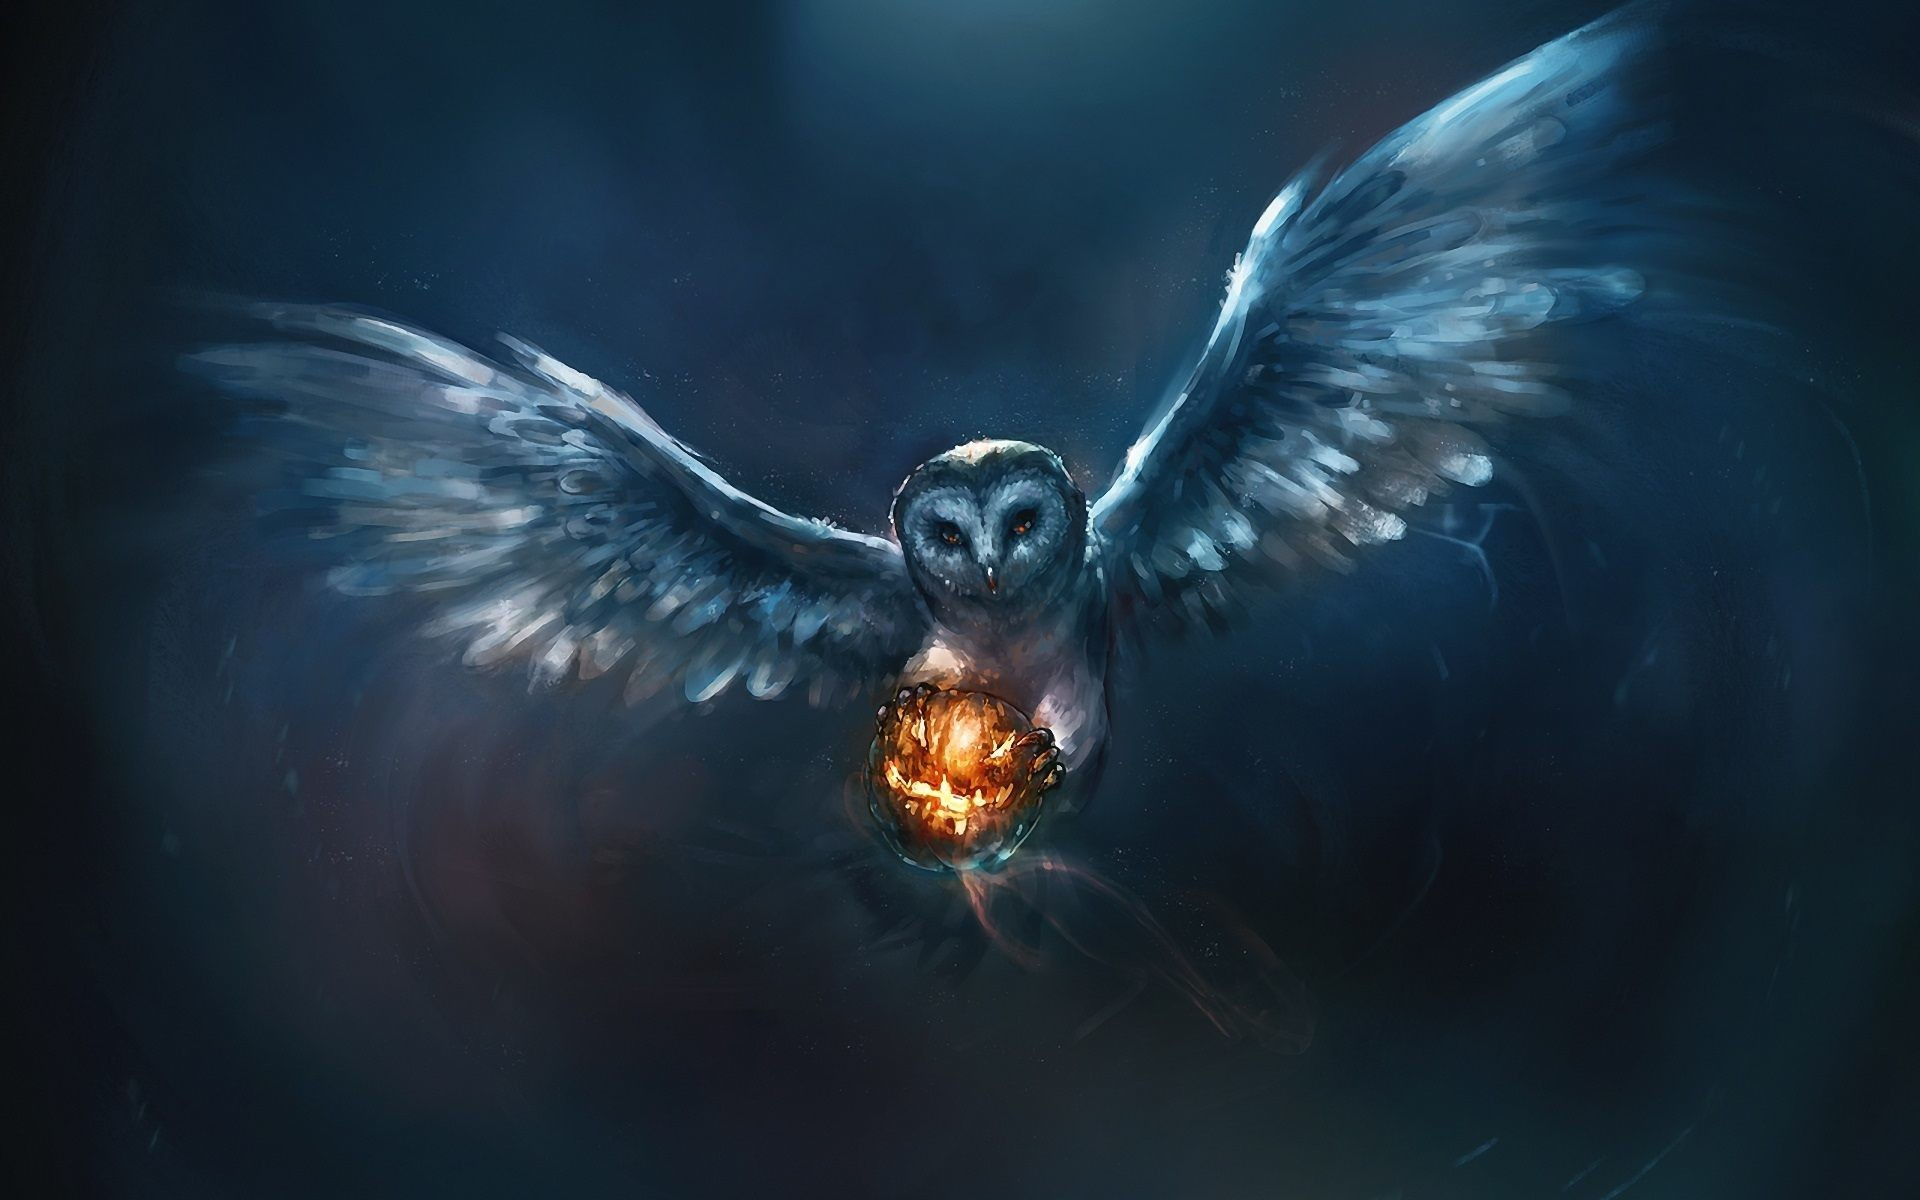 1920x1200 Owl painting and fire-ball - Wallpaper | GFXHive